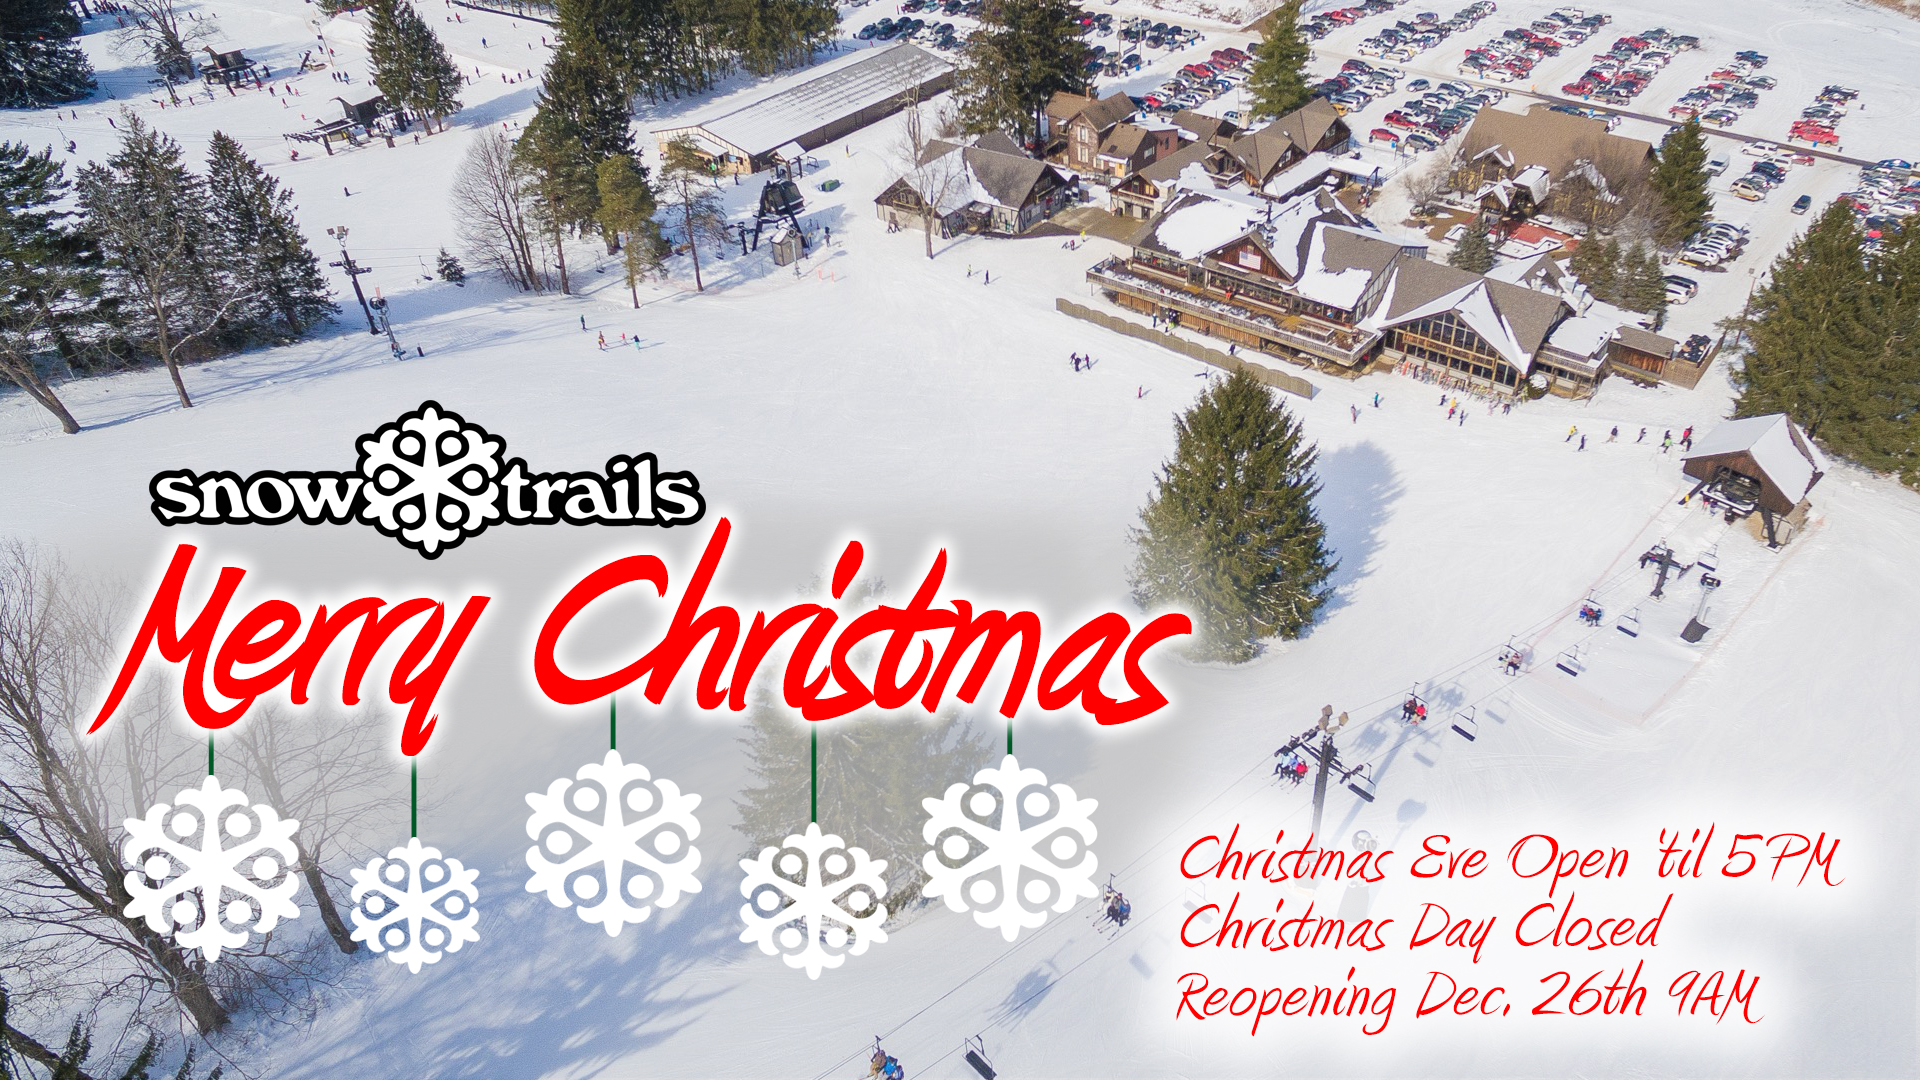 Merry Christmas - Reopening Slopes & Tubing Park Dec. 26th 9AM